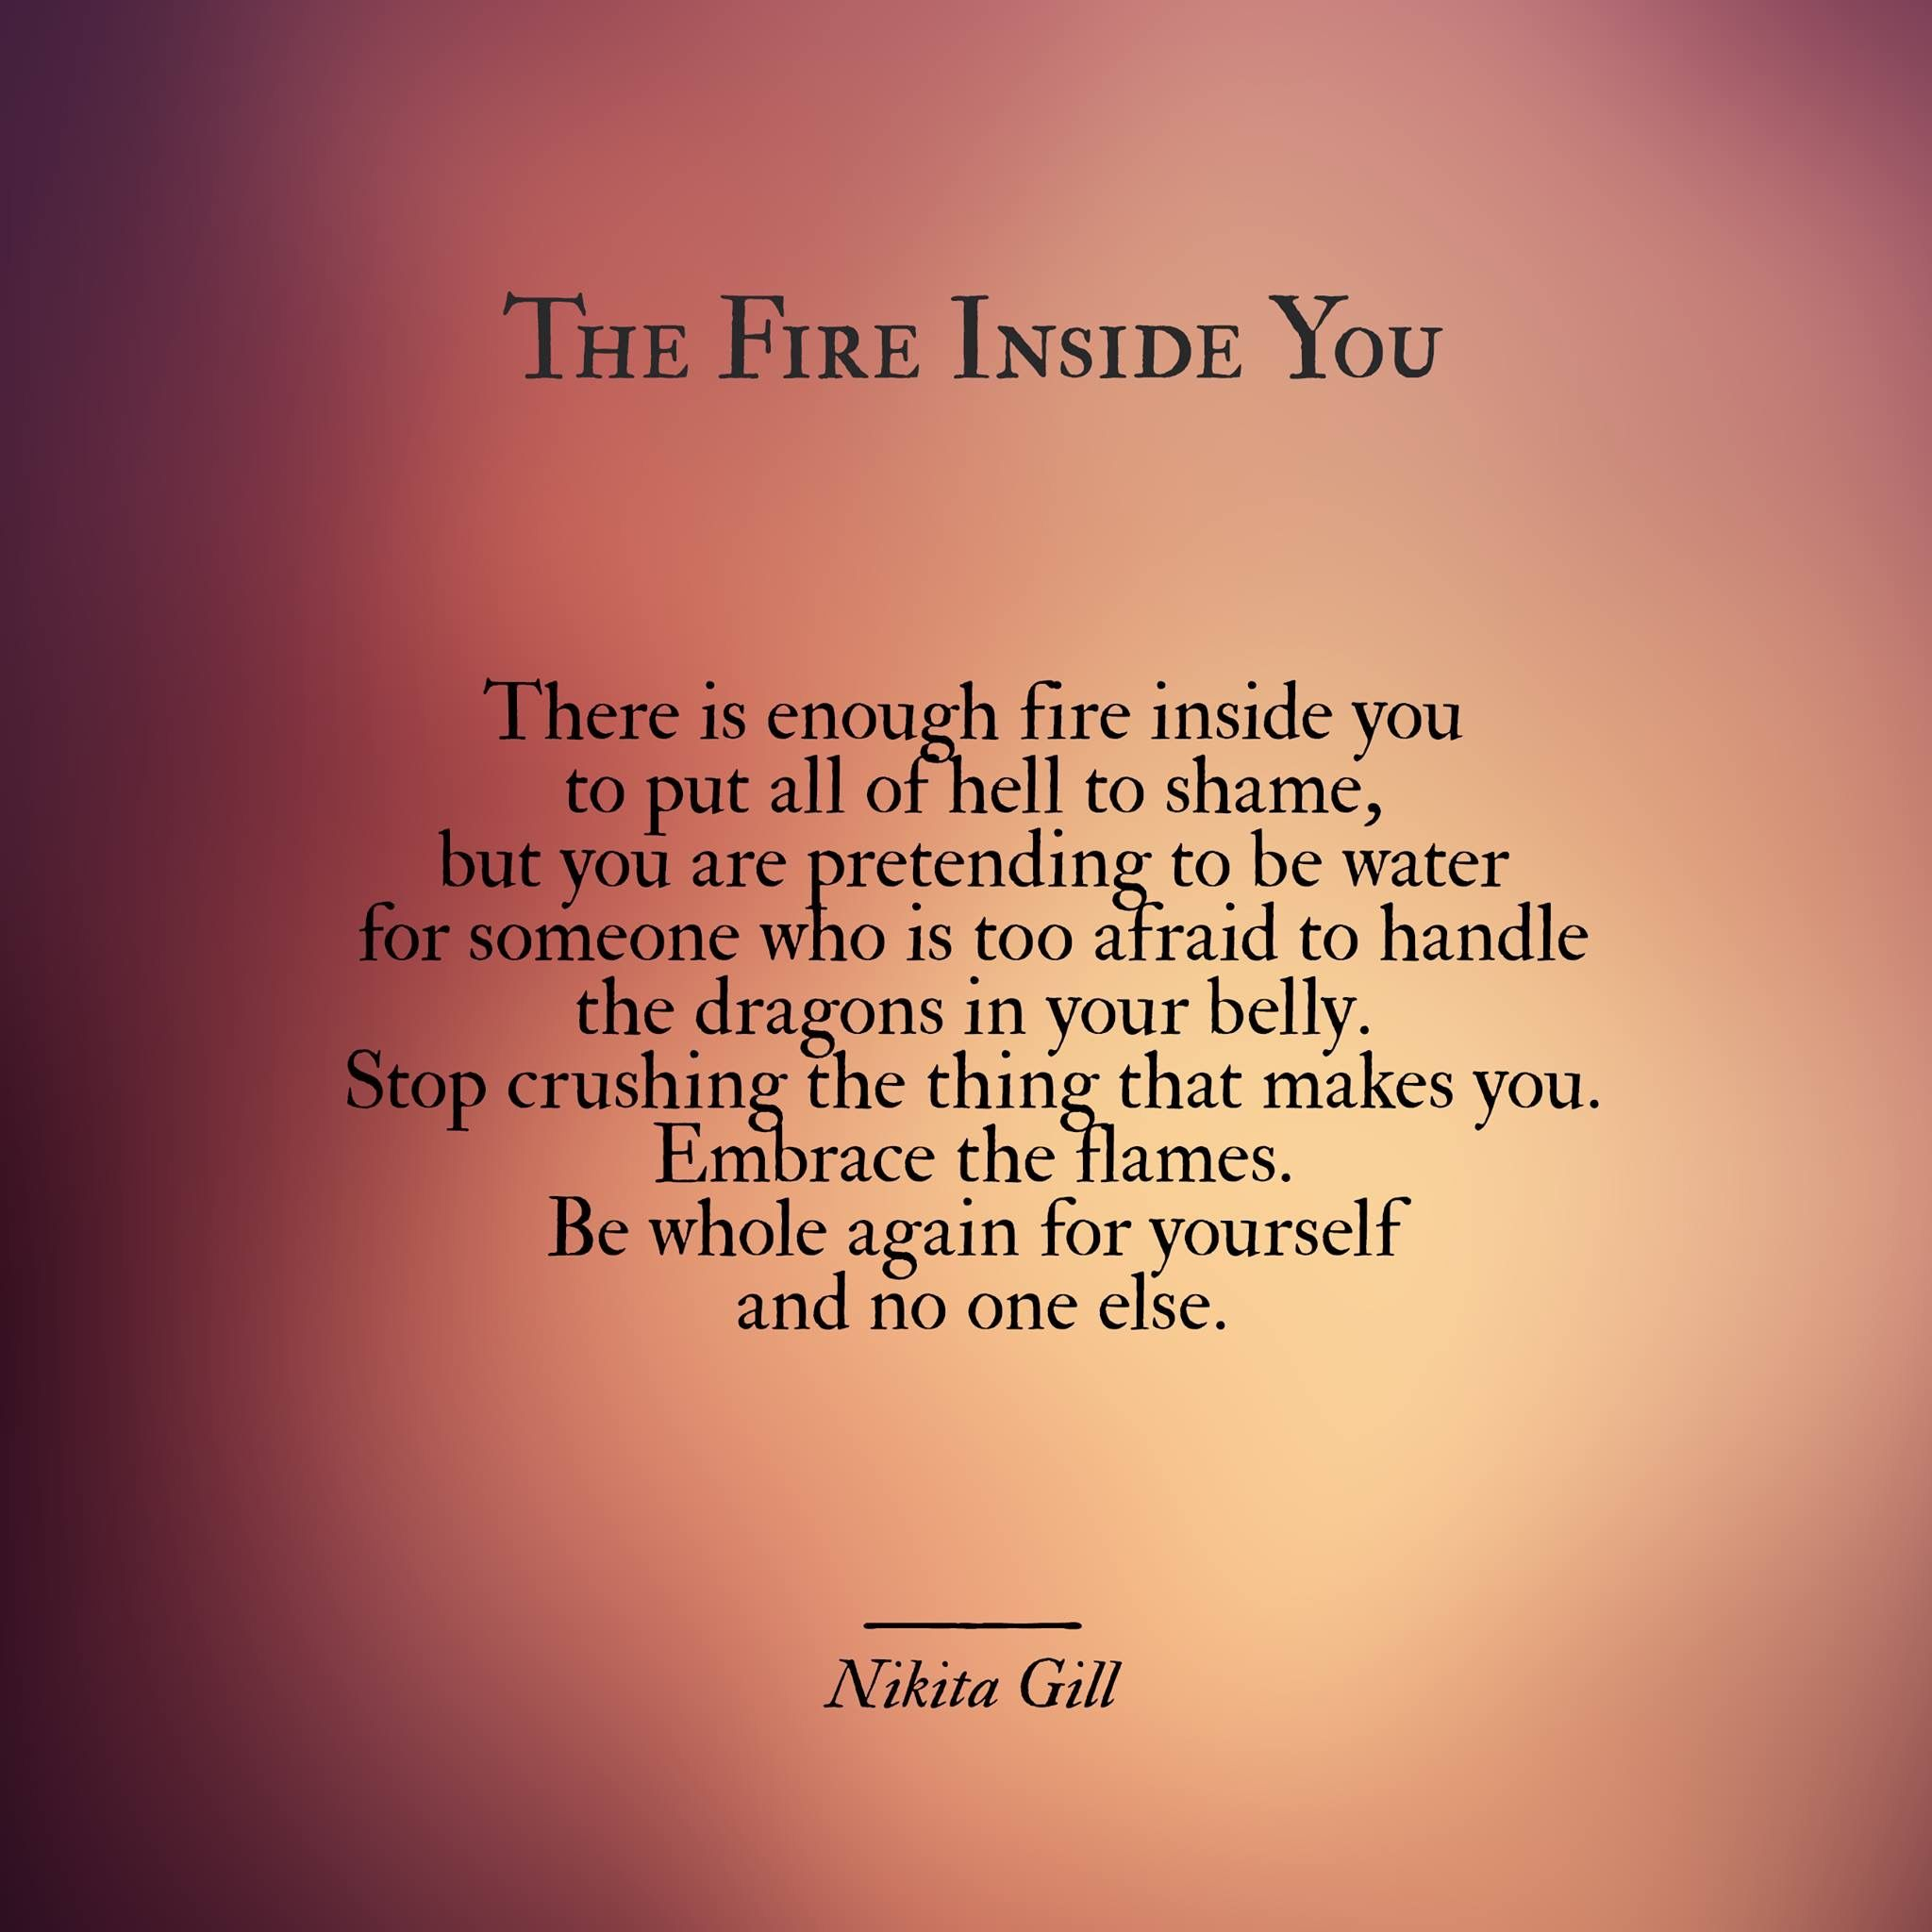 Fire Quotes The fire inside you Nikita Gill | QUOTES Fire Quotes